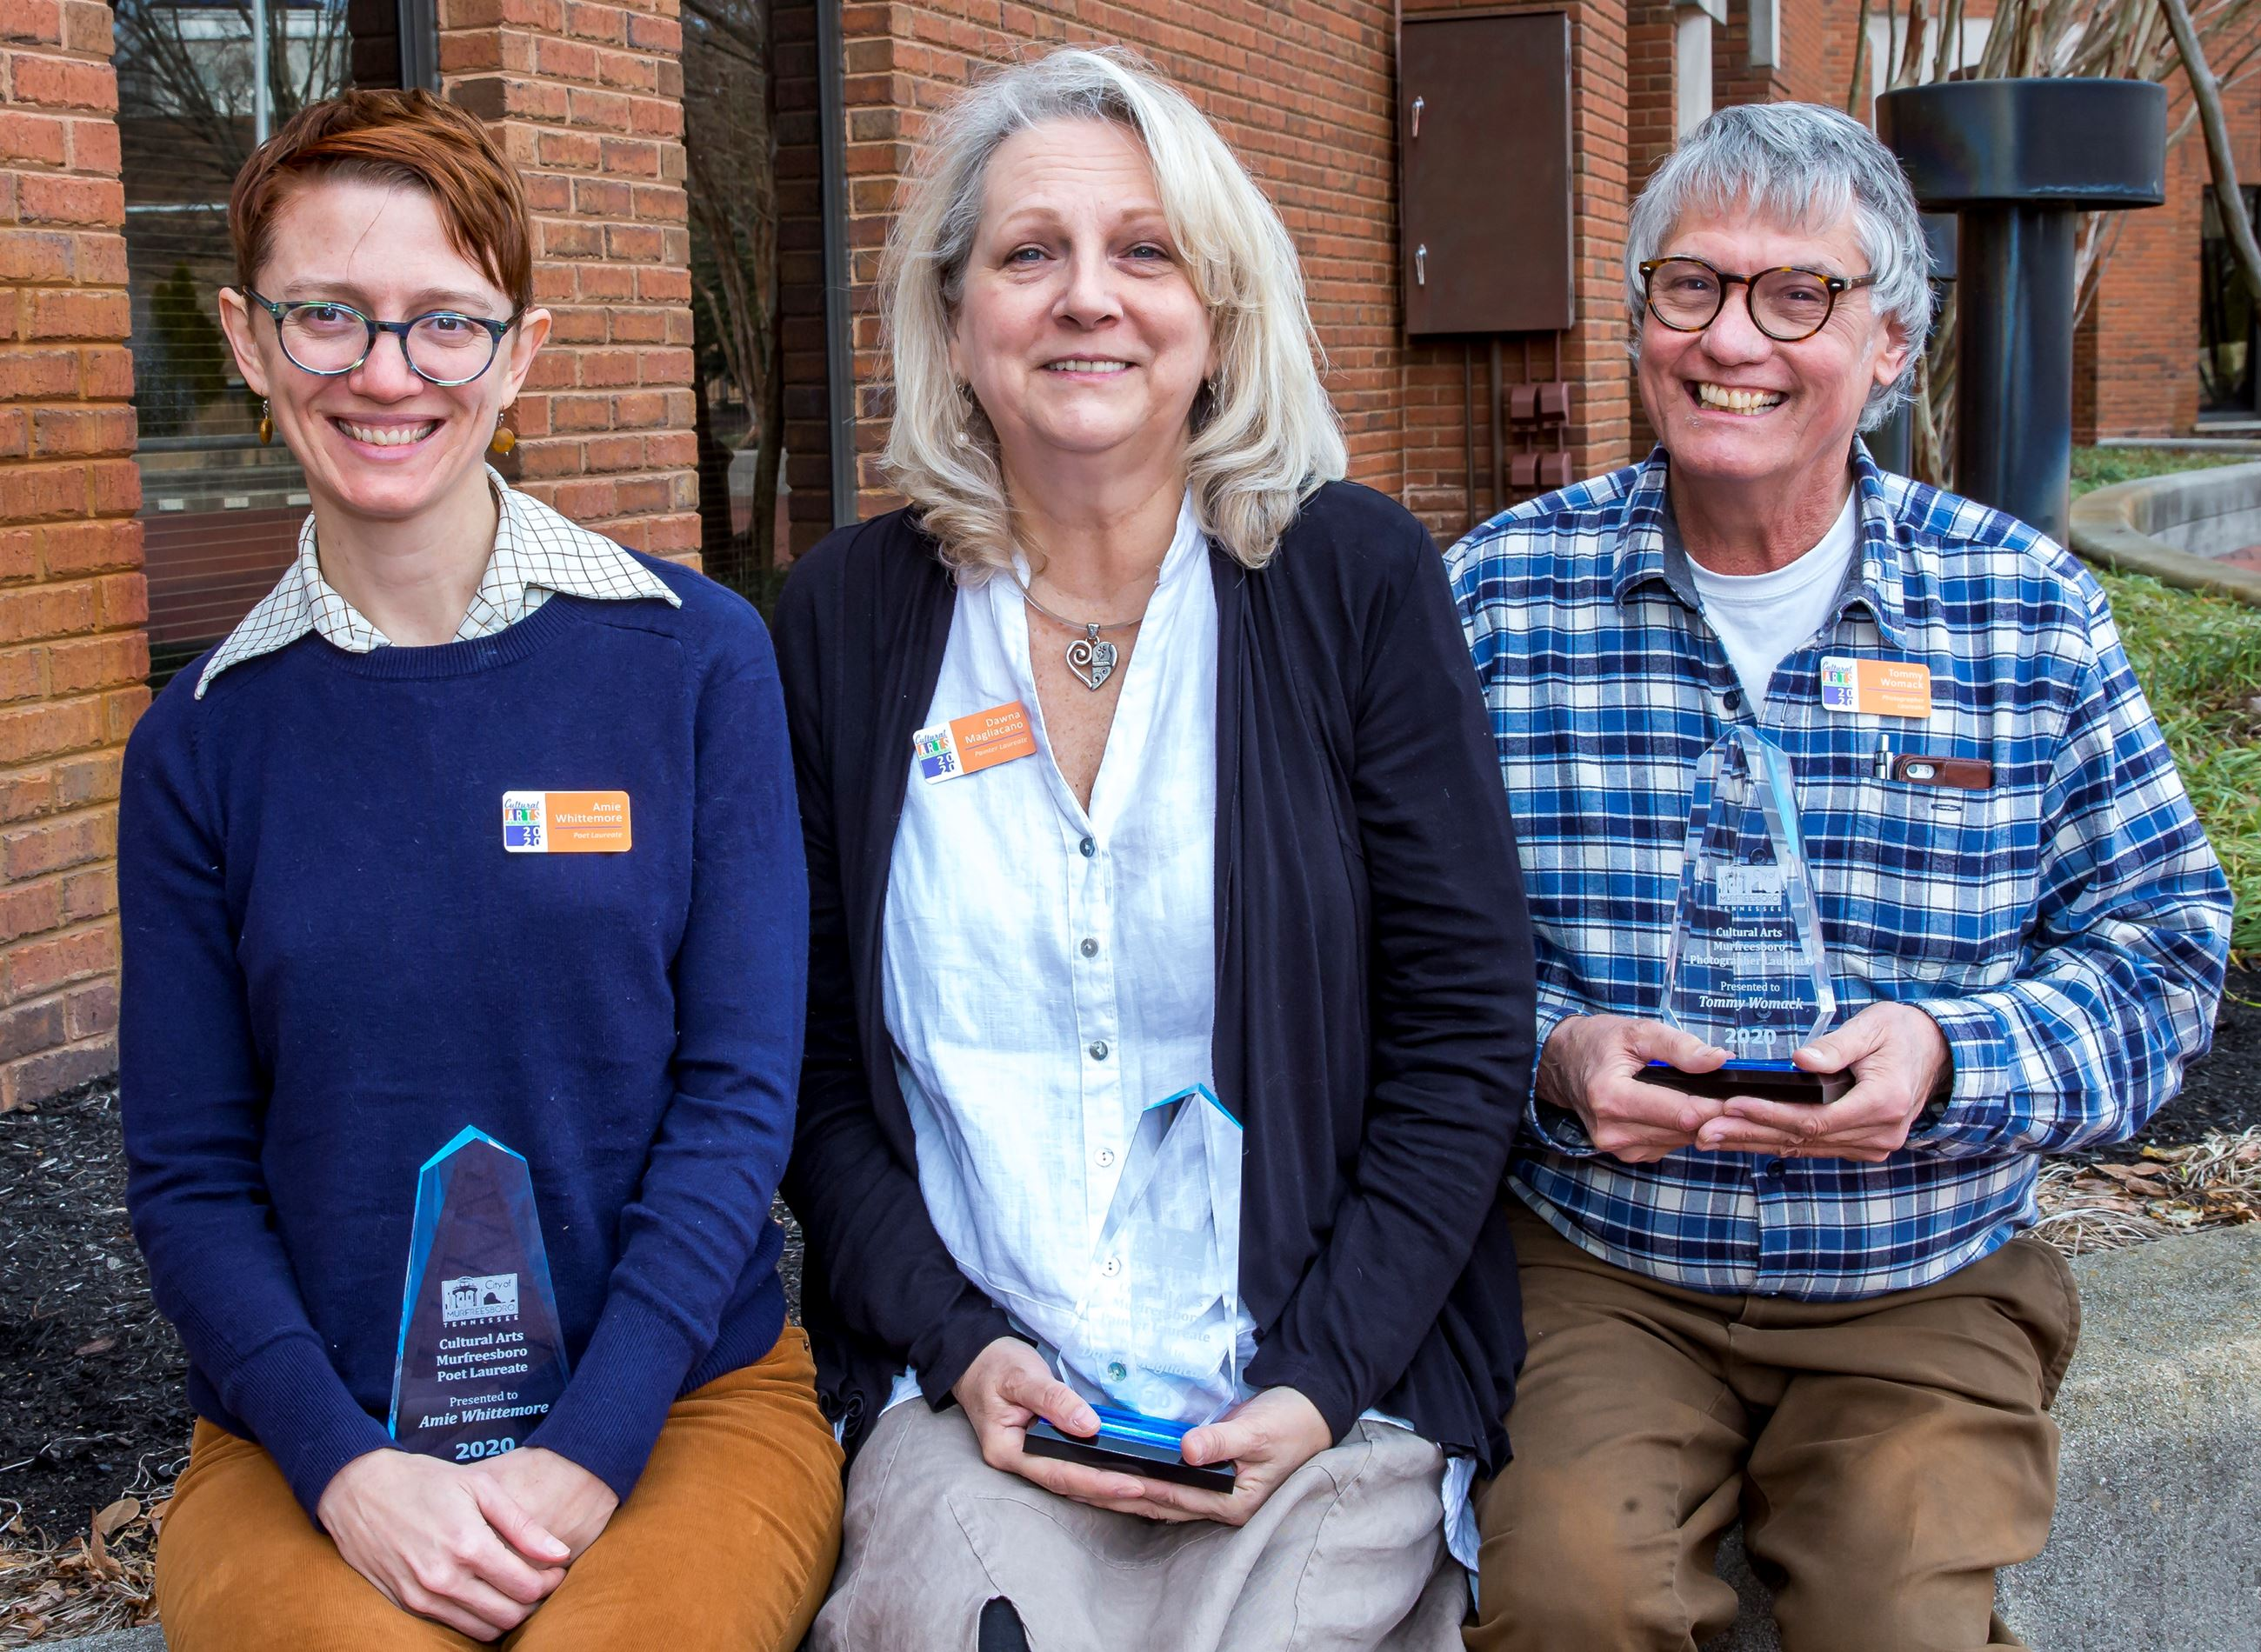 Amie Whittemore, Dawna Magliacano & Tommy Womack 2020 Laureates